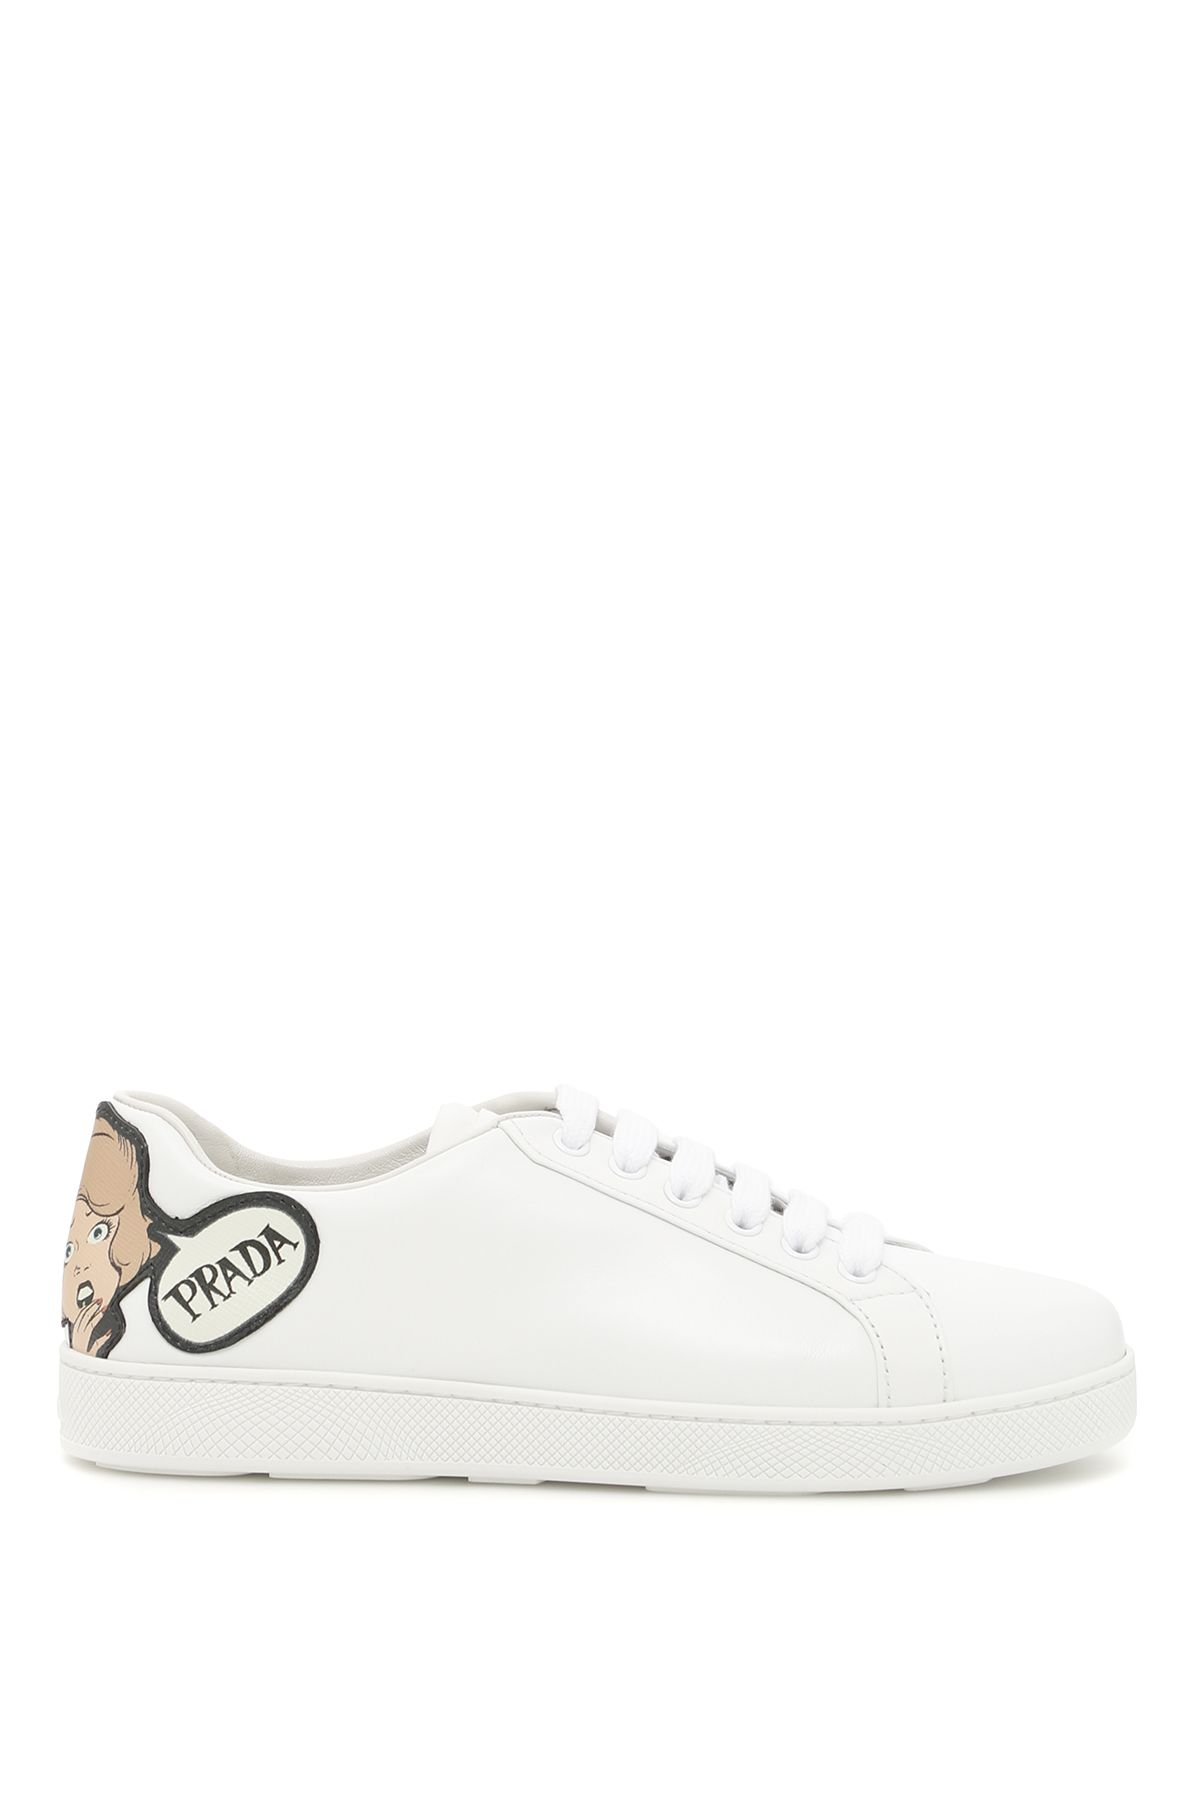 prada shoes women sneakers with logo patch